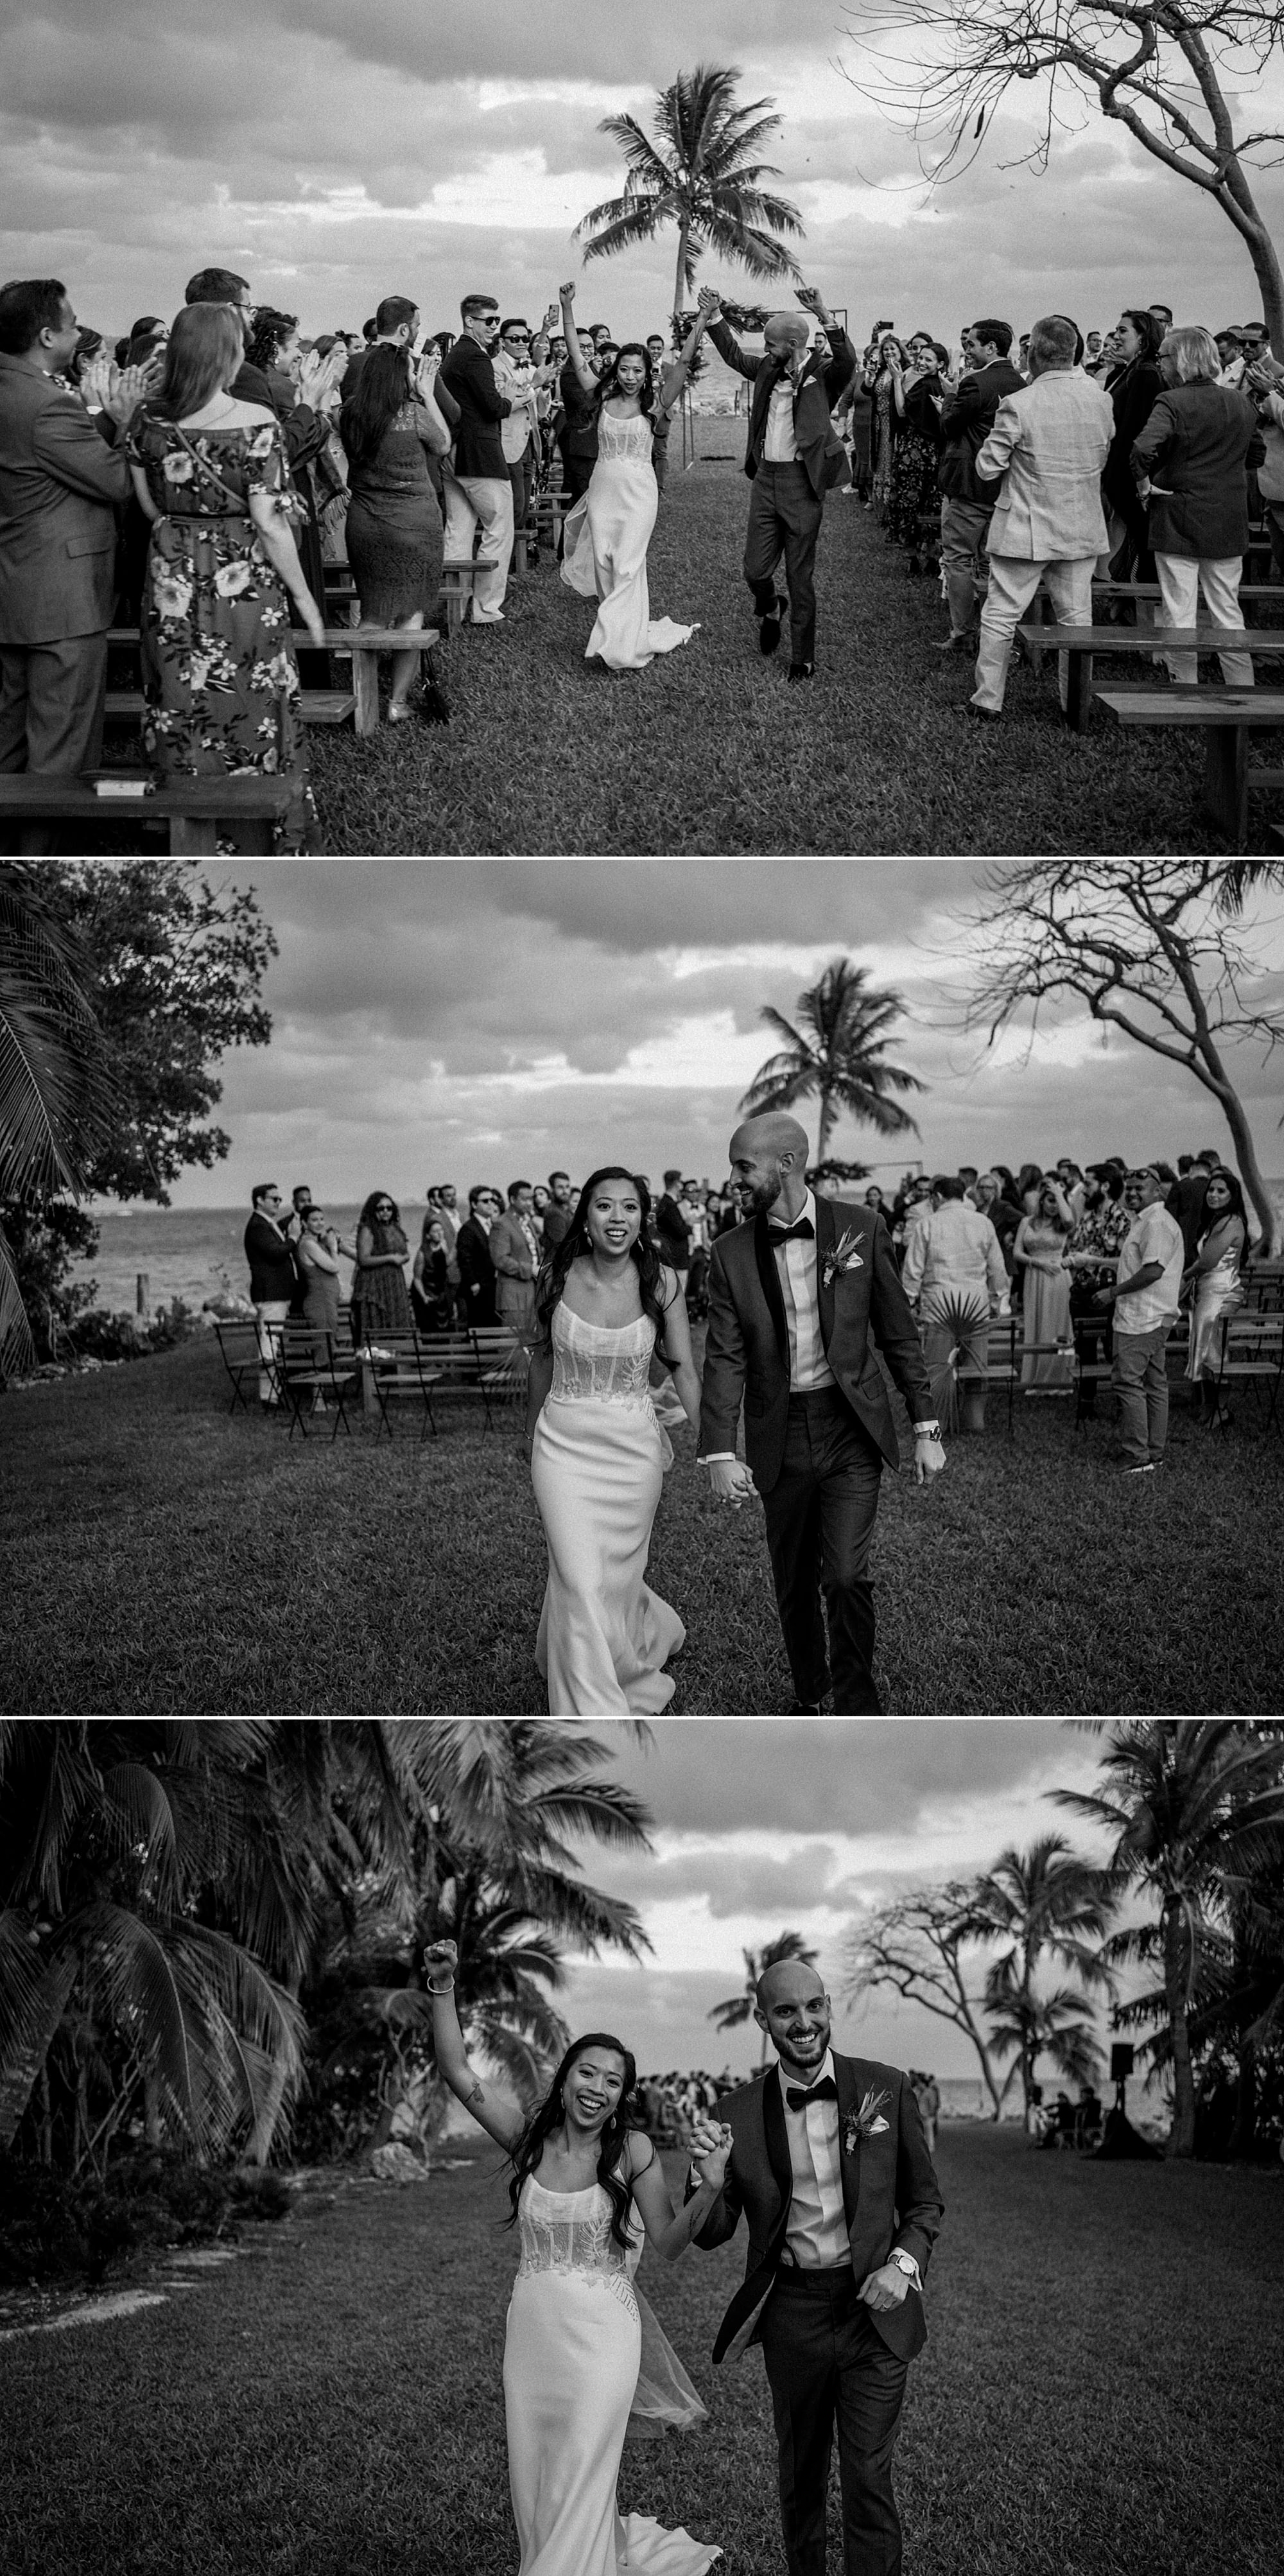 natural wedding photography miami the kampong 0466 1